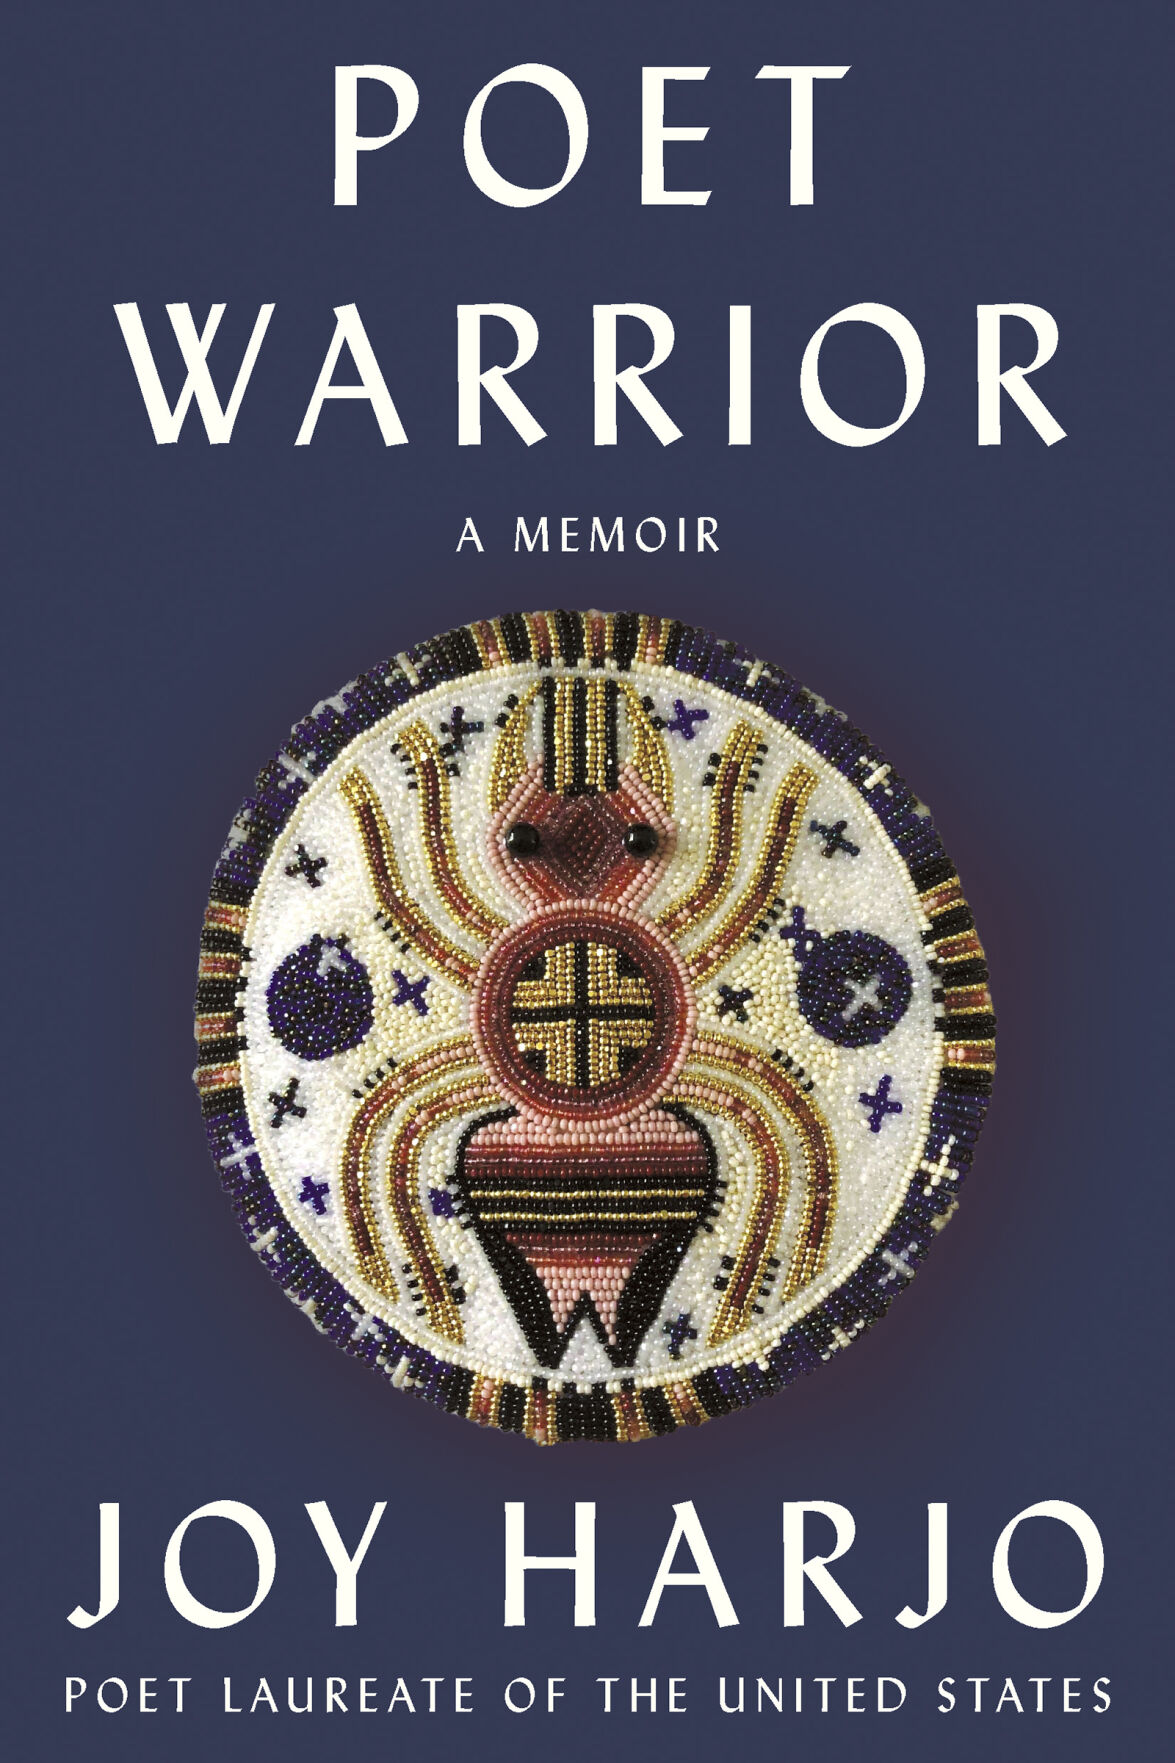 BOOKS-BOOK-POET-WARRIOR-REVIEW-MCT